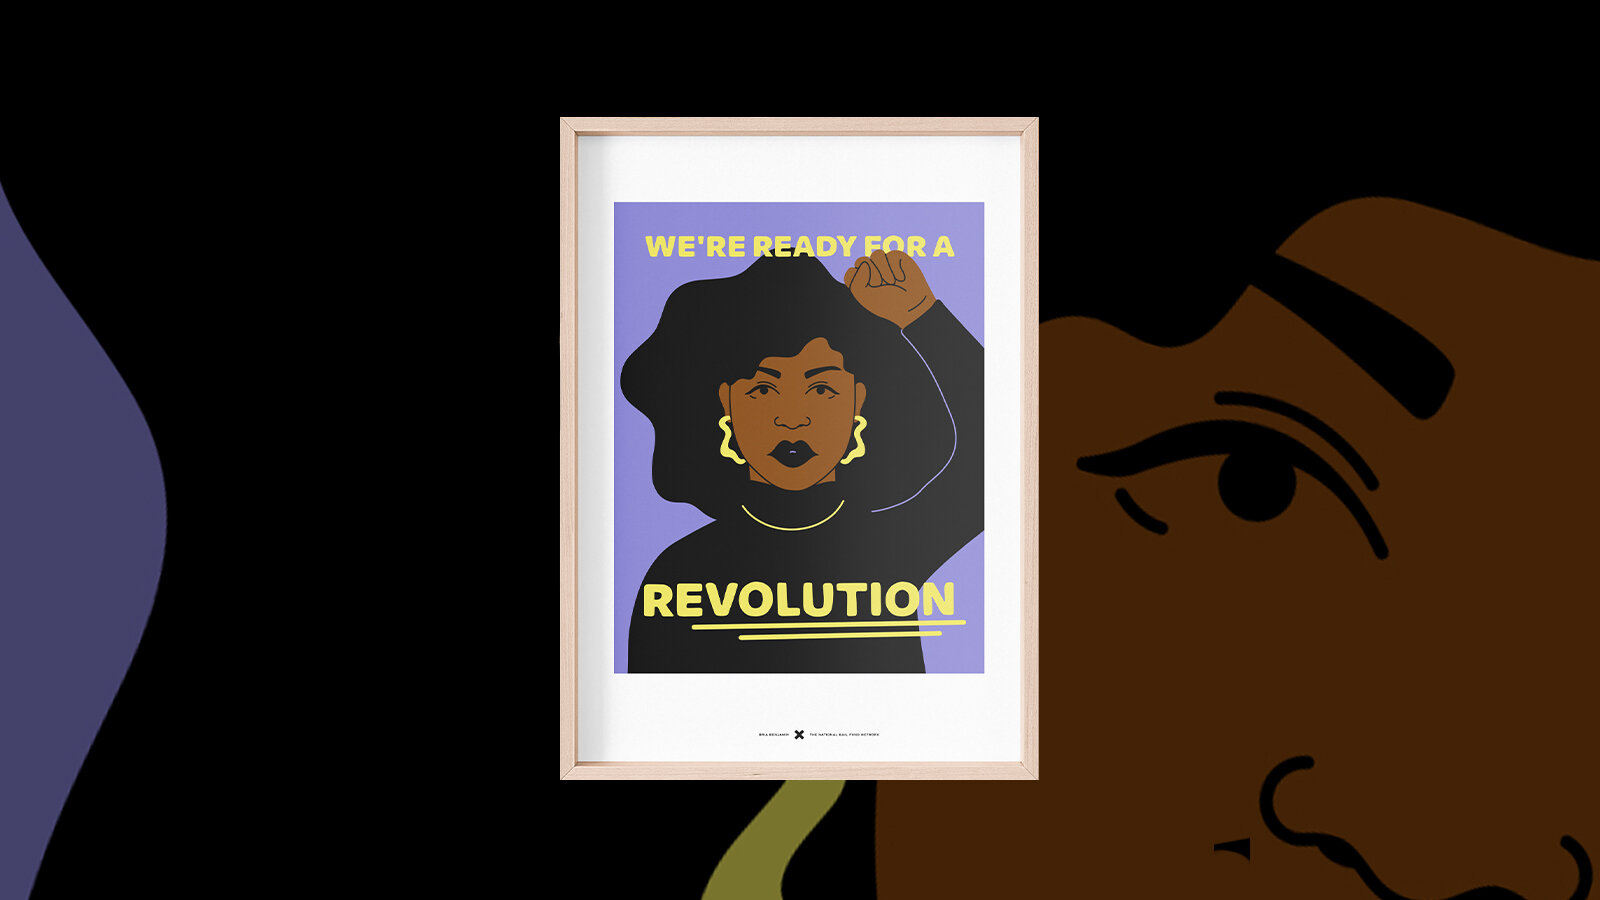 """A framed image of a woman with her fist raised on a purple background with the words """"WE WANT A REVOLUTION"""" on white."""